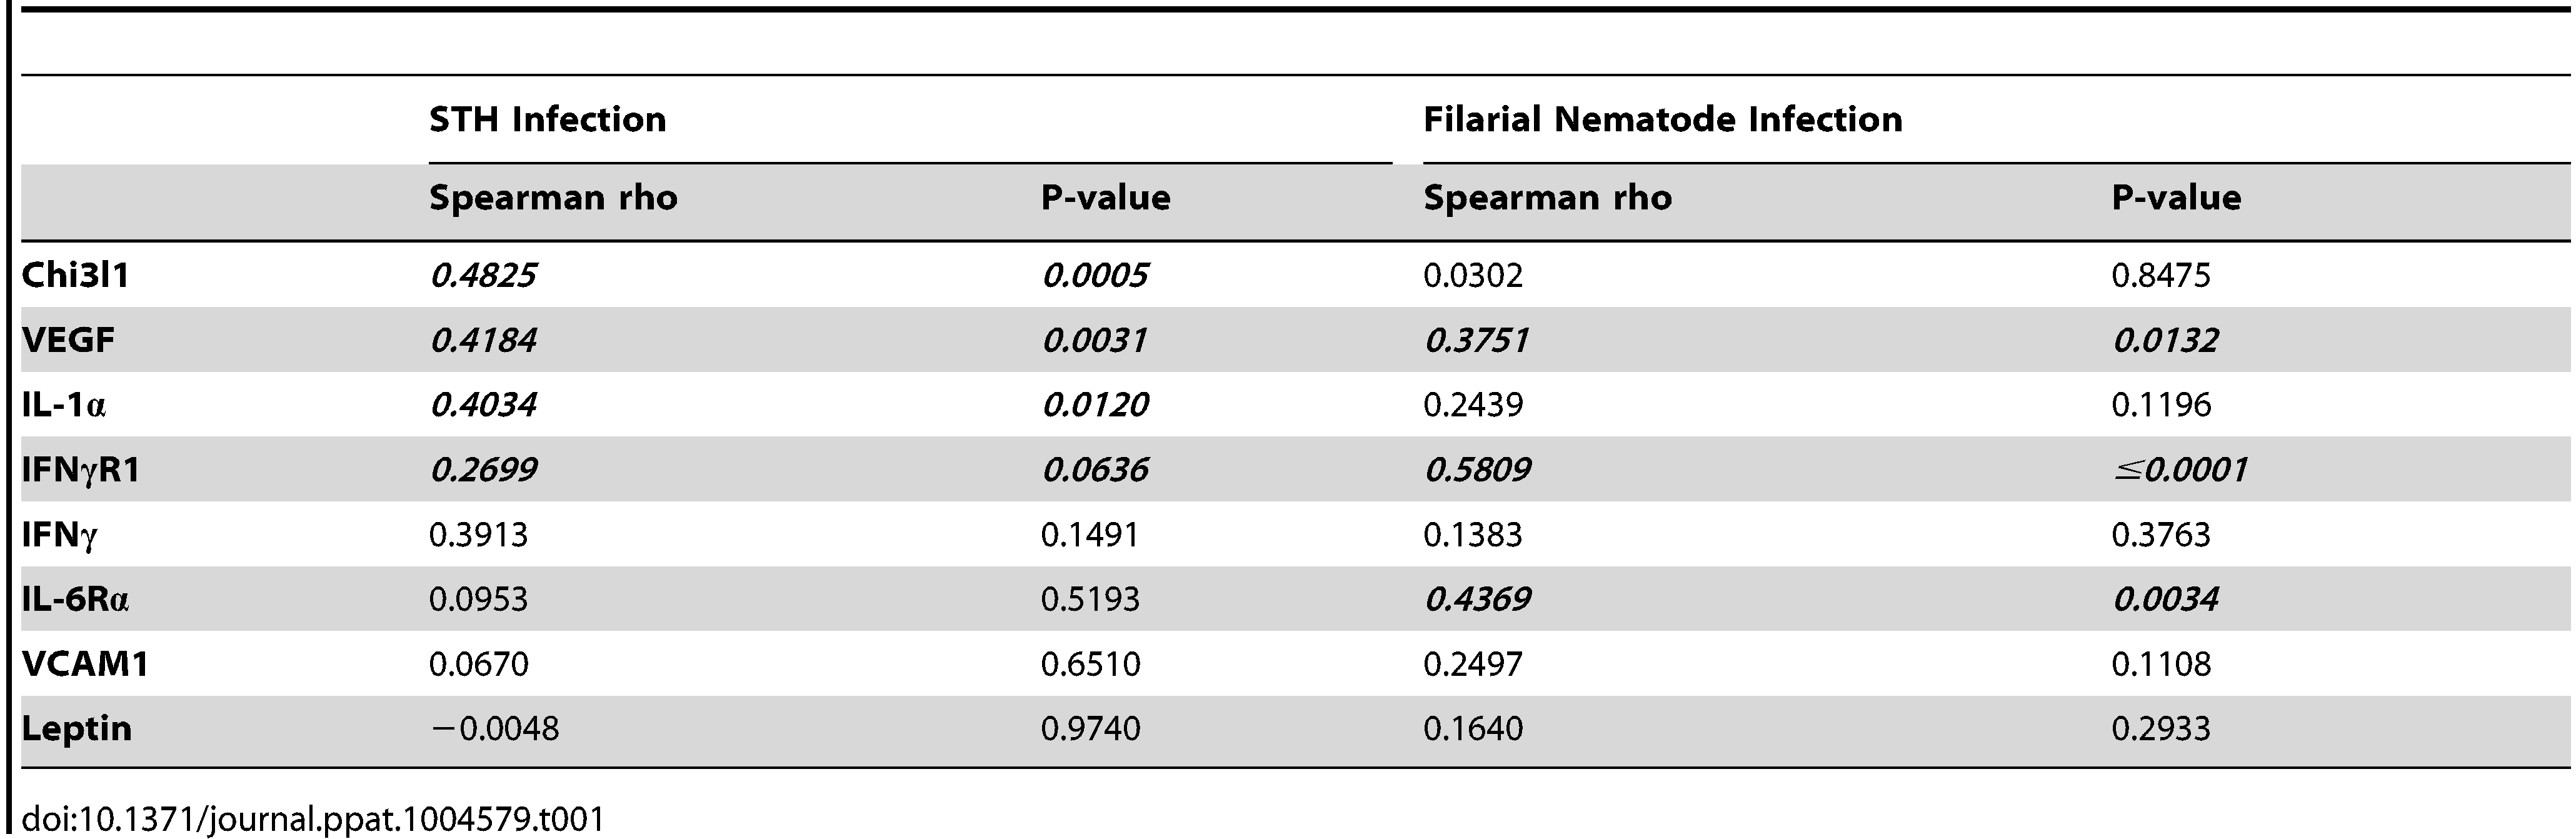 Many inflammatory factors are positively correlated with resistin in humans infected with soil-transmitted helminths or filarial nematodes.